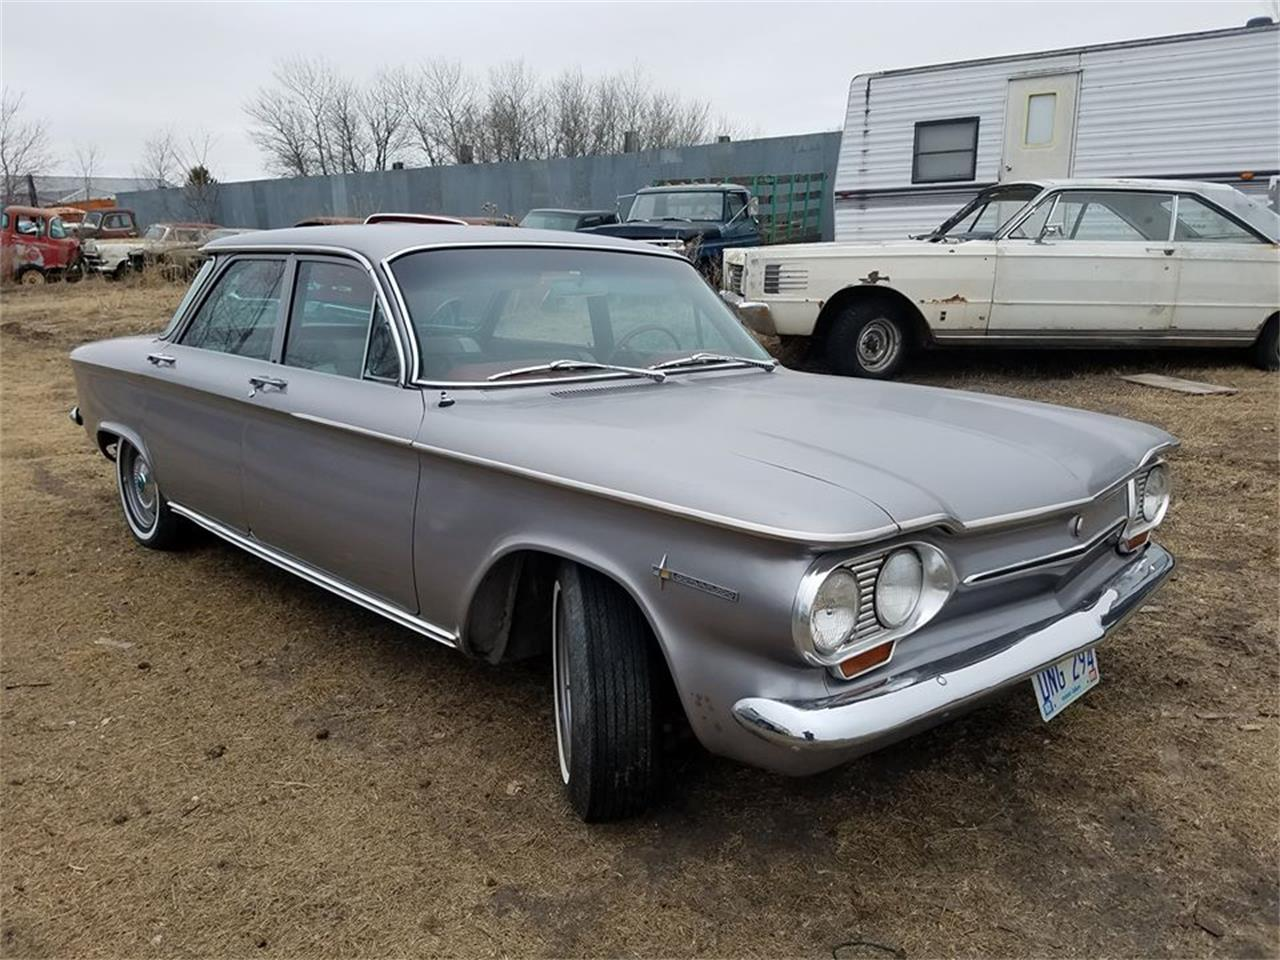 1963 Chevrolet Corvair (CC-1015045) for sale in Crookston, Minnesota